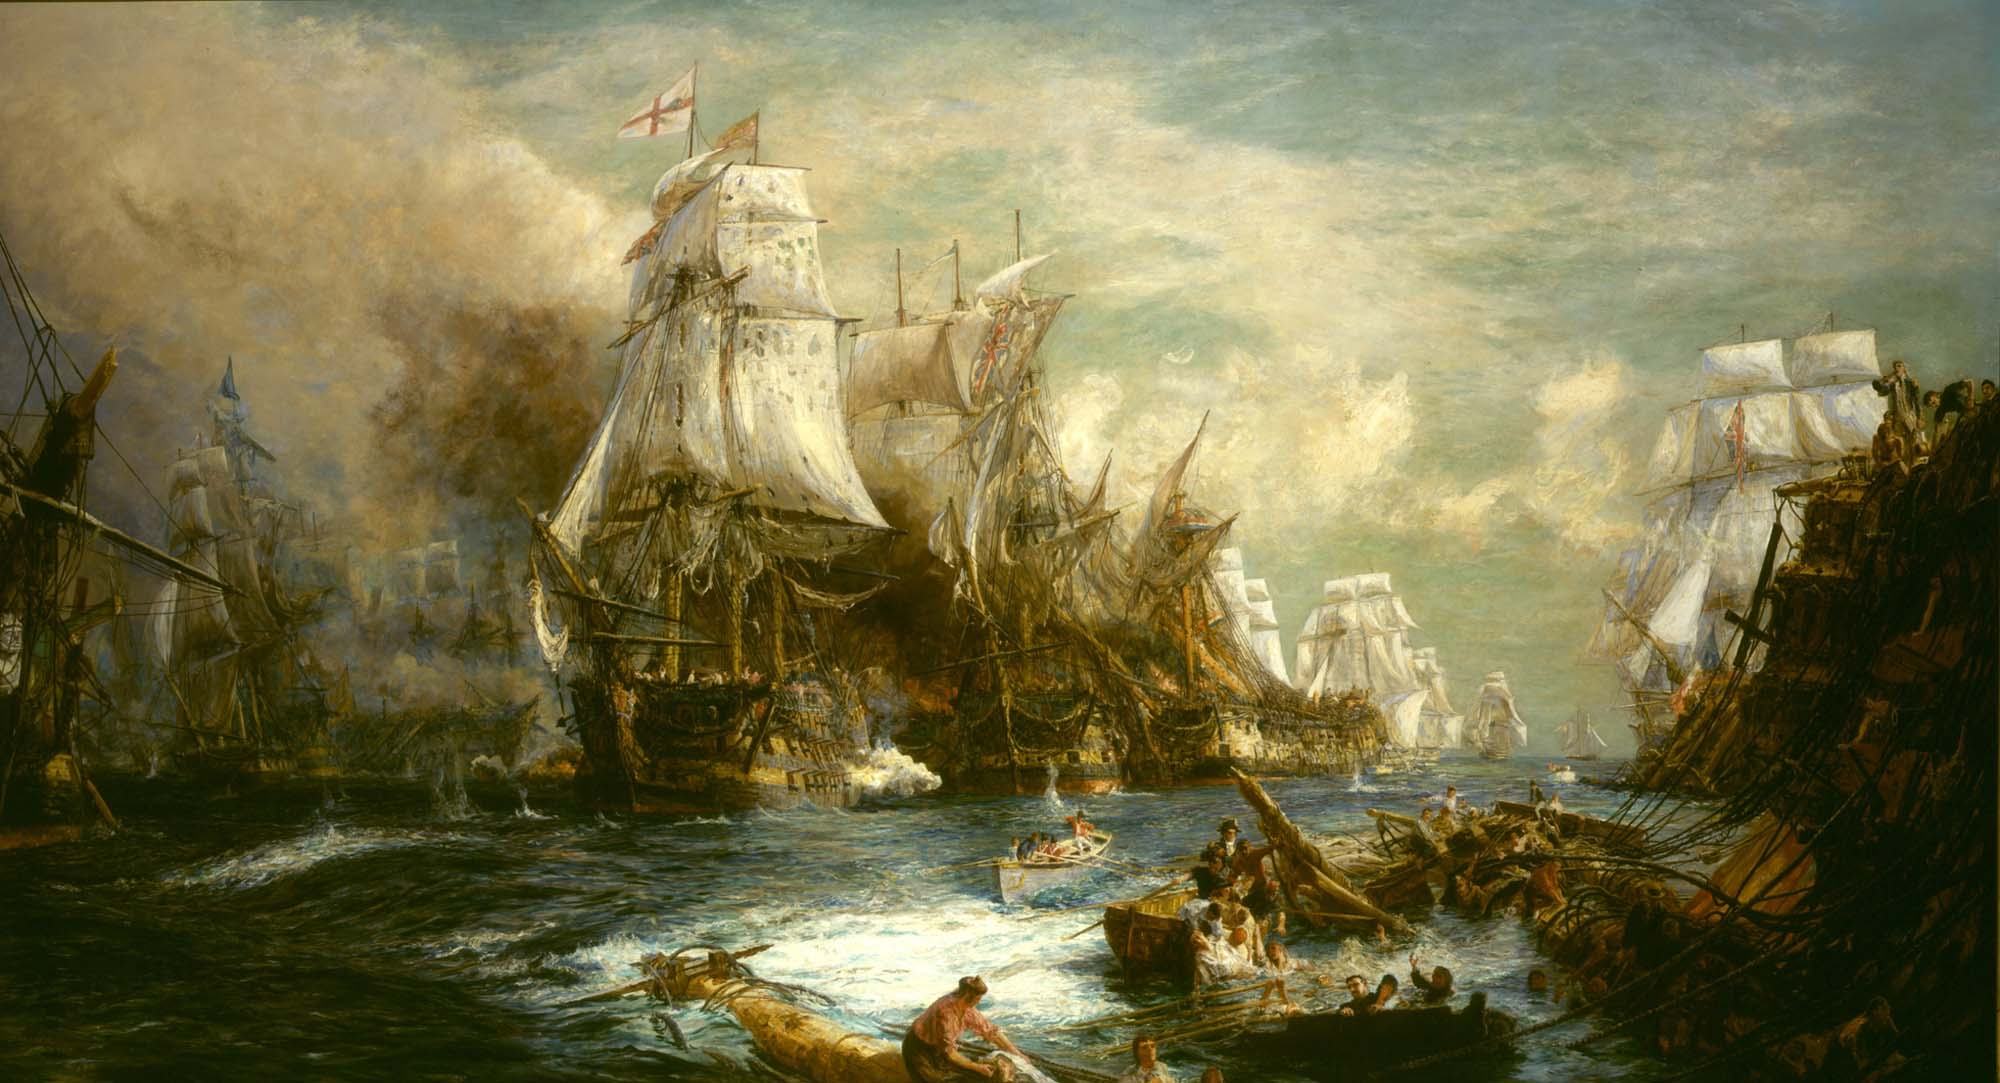 a dramatic painting showing sialing ships at battle with men in the wreckage of the water in the foreground